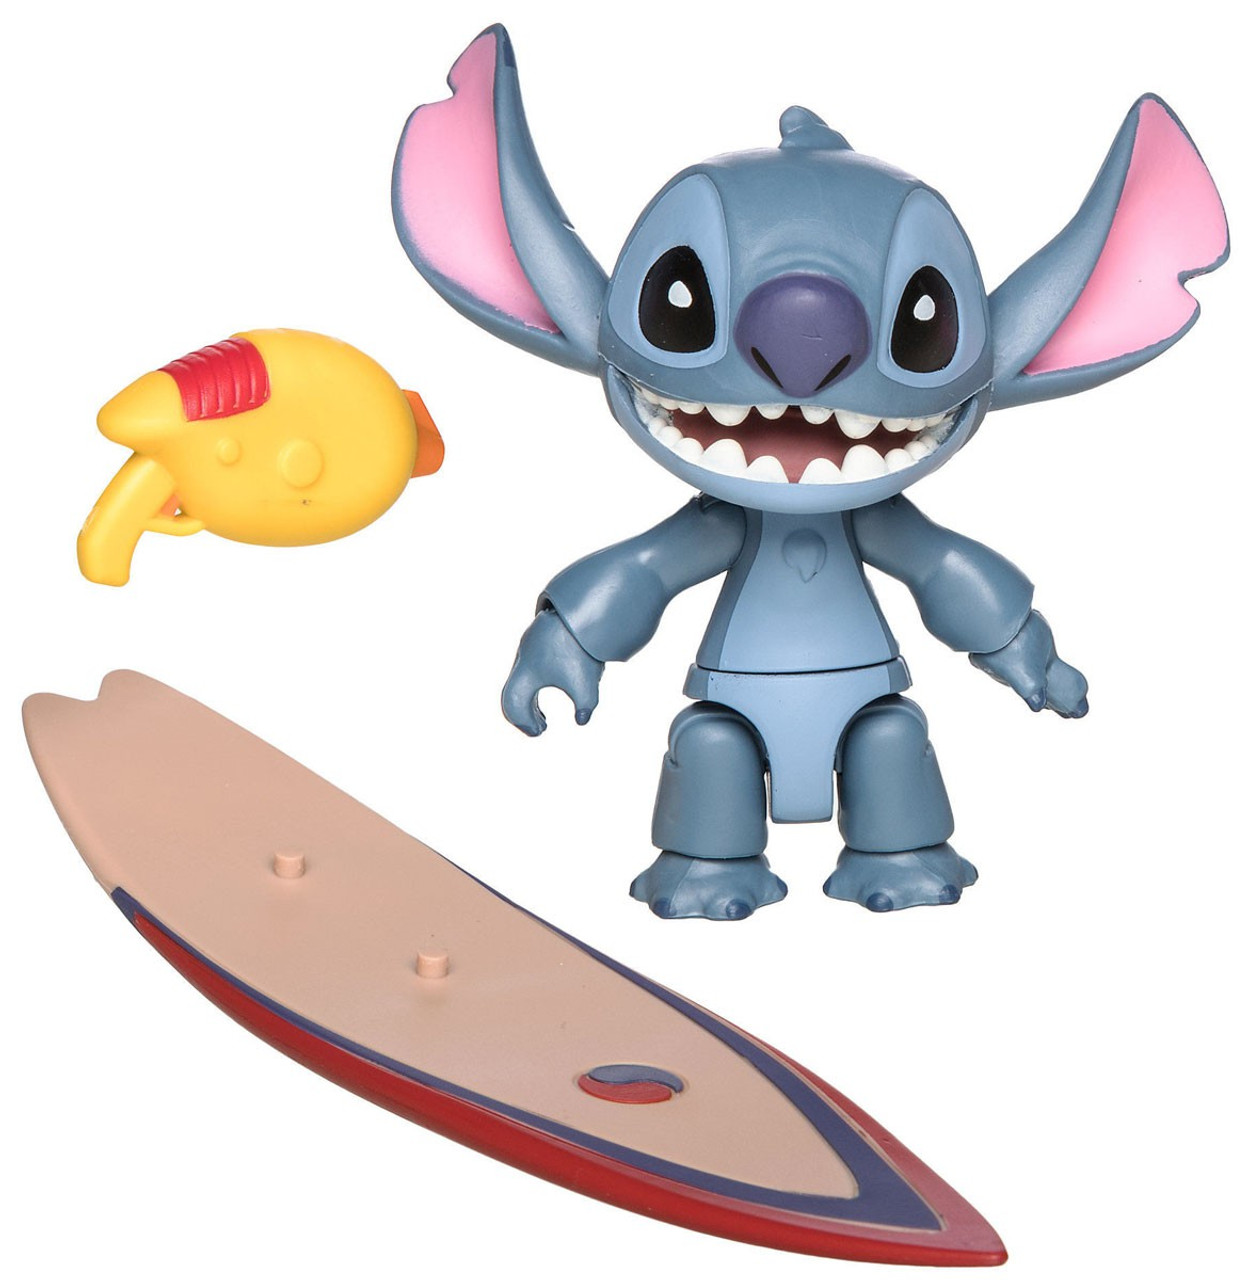 Disney Lilo & Stitch Toybox Stitch Exclusive Action Figure